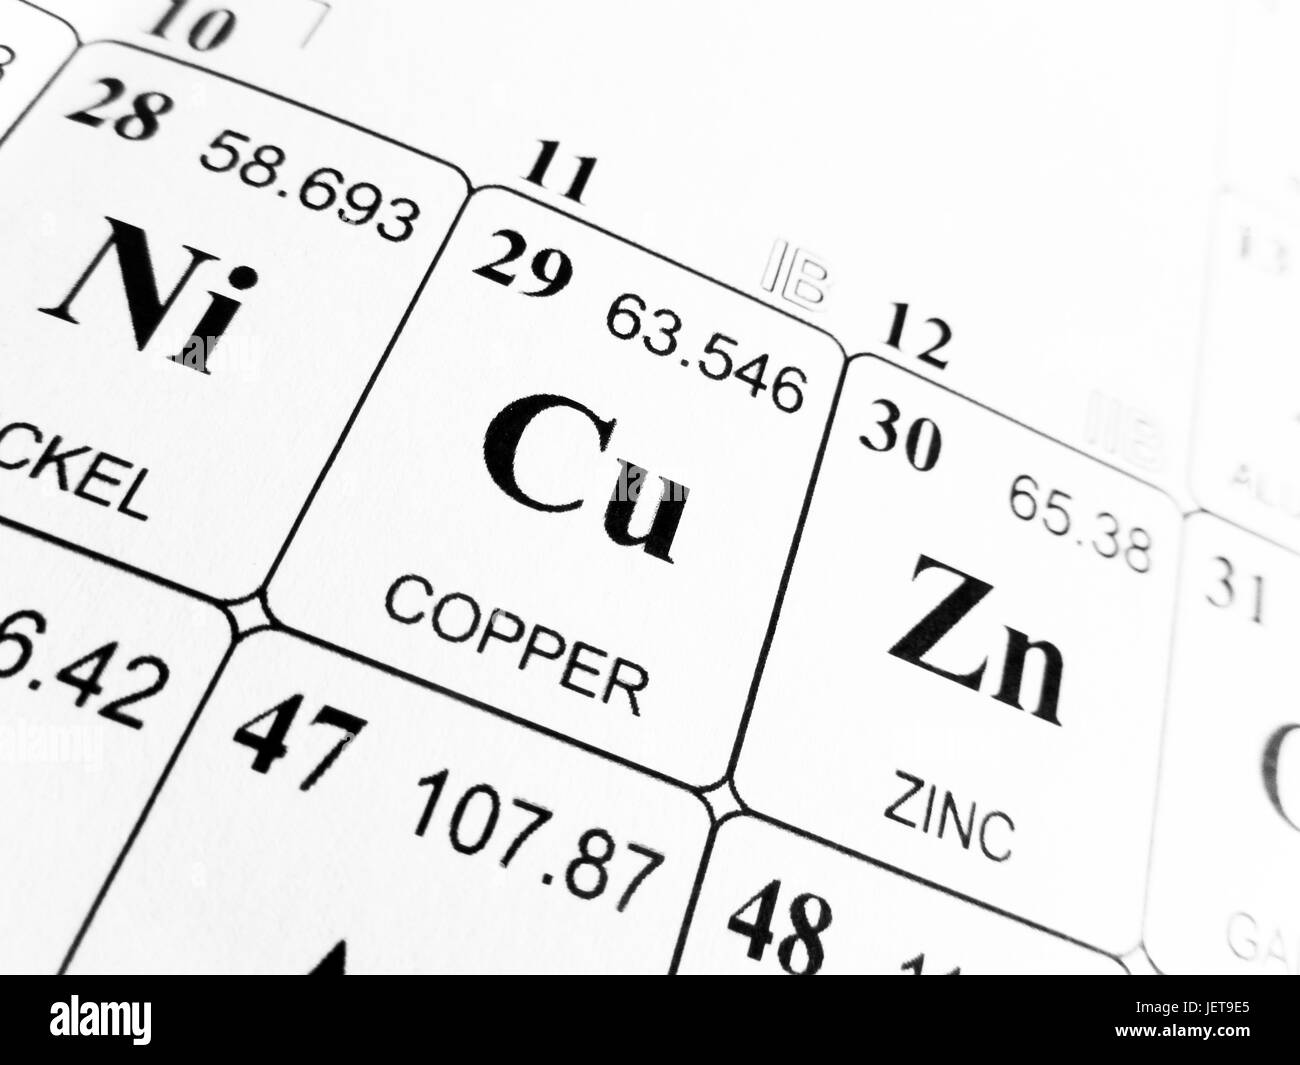 copper on the periodic table of the elements - Periodic Table Copper